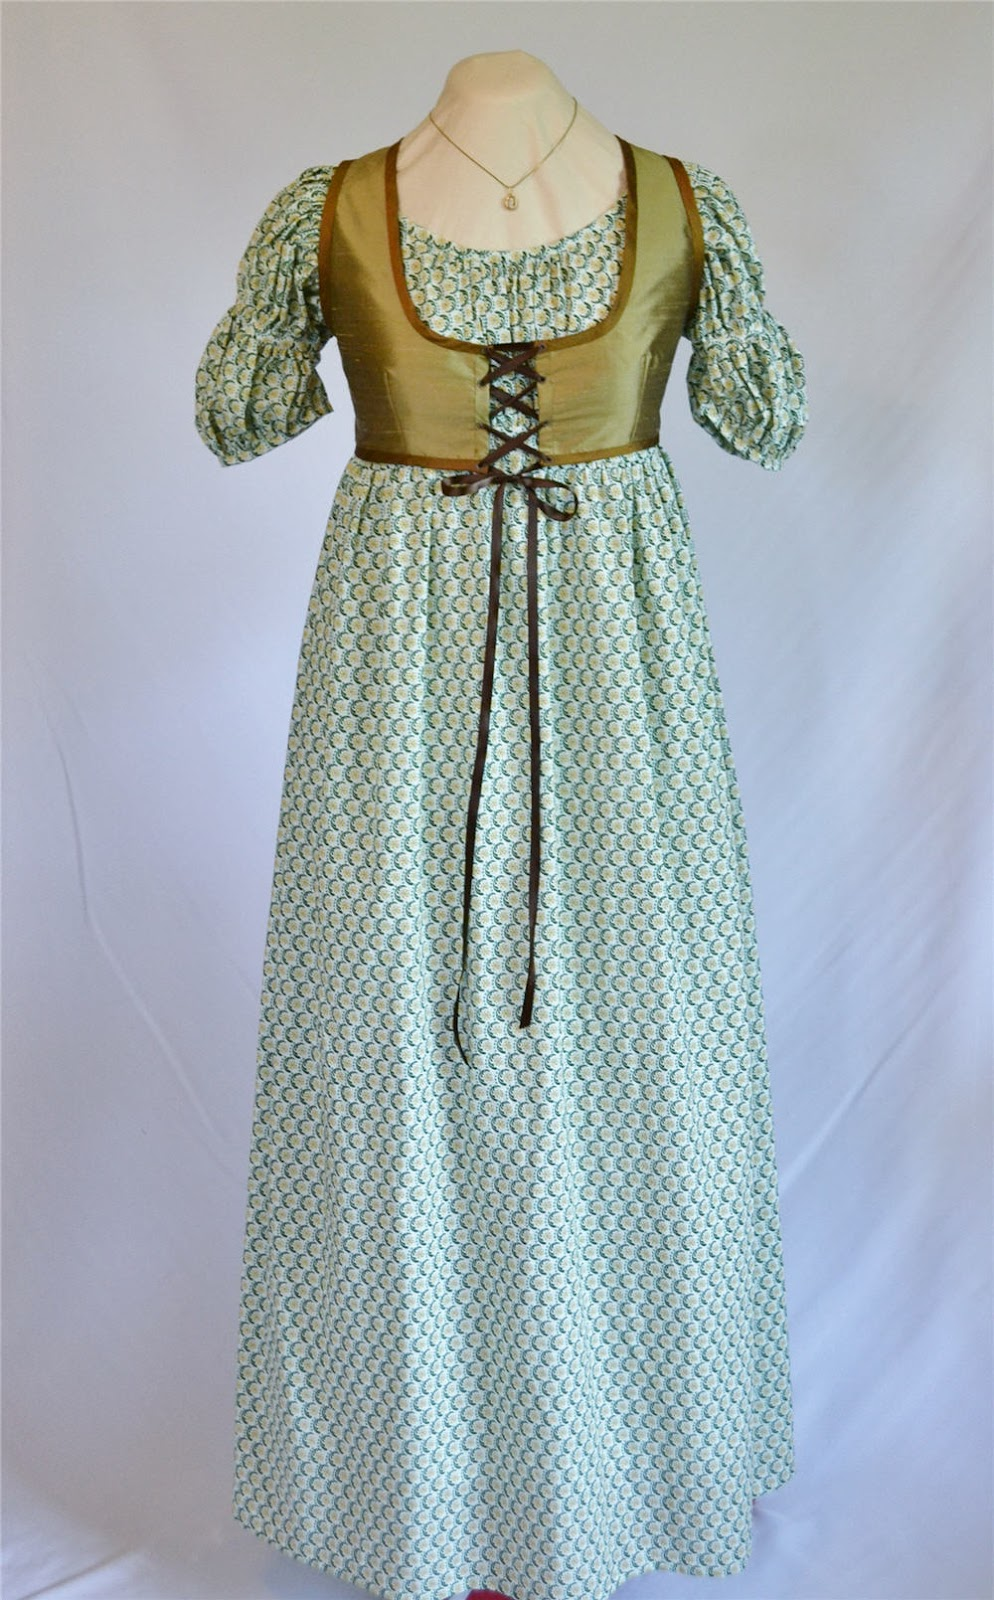 The Story Of A Seamstress New Regency Dresses And Weskits